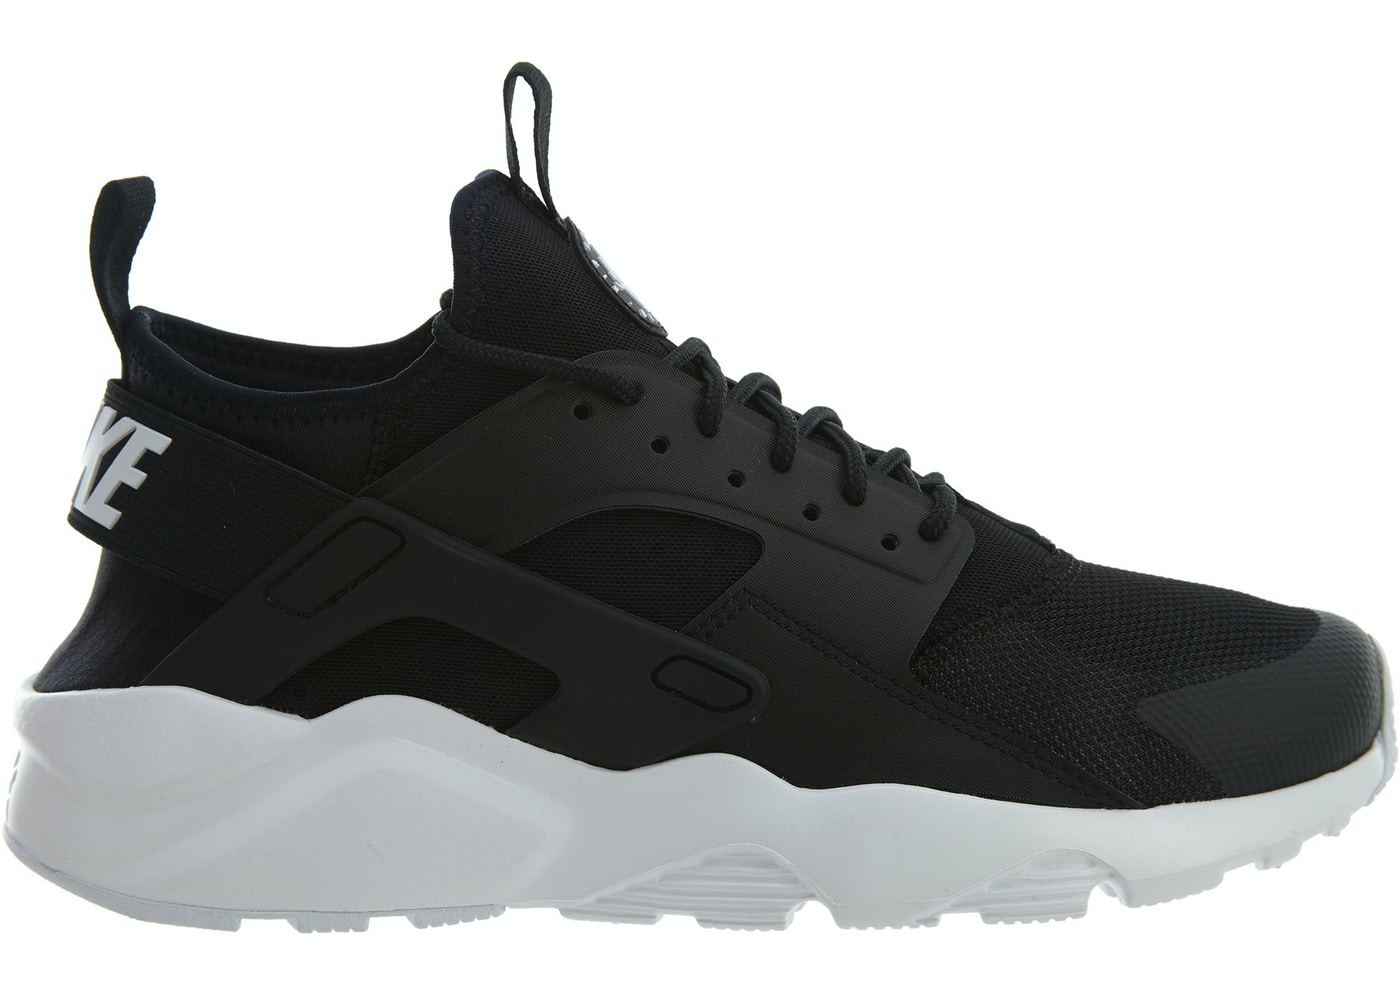 wholesale dealer 5506f c639c Air Huarache Run Ultra Black White